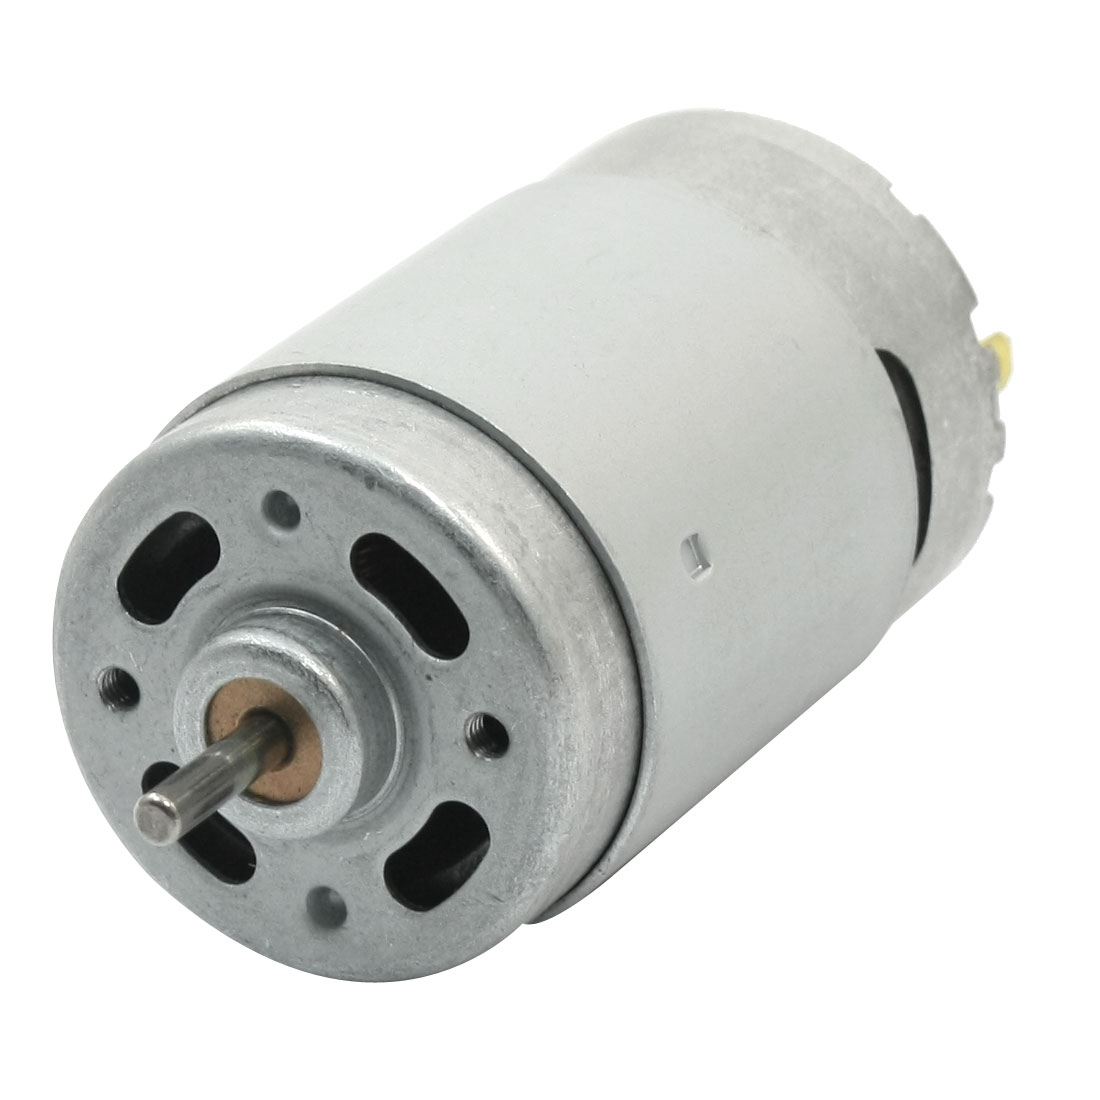 DC12V 11000 R/MIN Output High Torque Rotary Speed Reducer Connecting Cylinder Shape Magnet Gear Motor